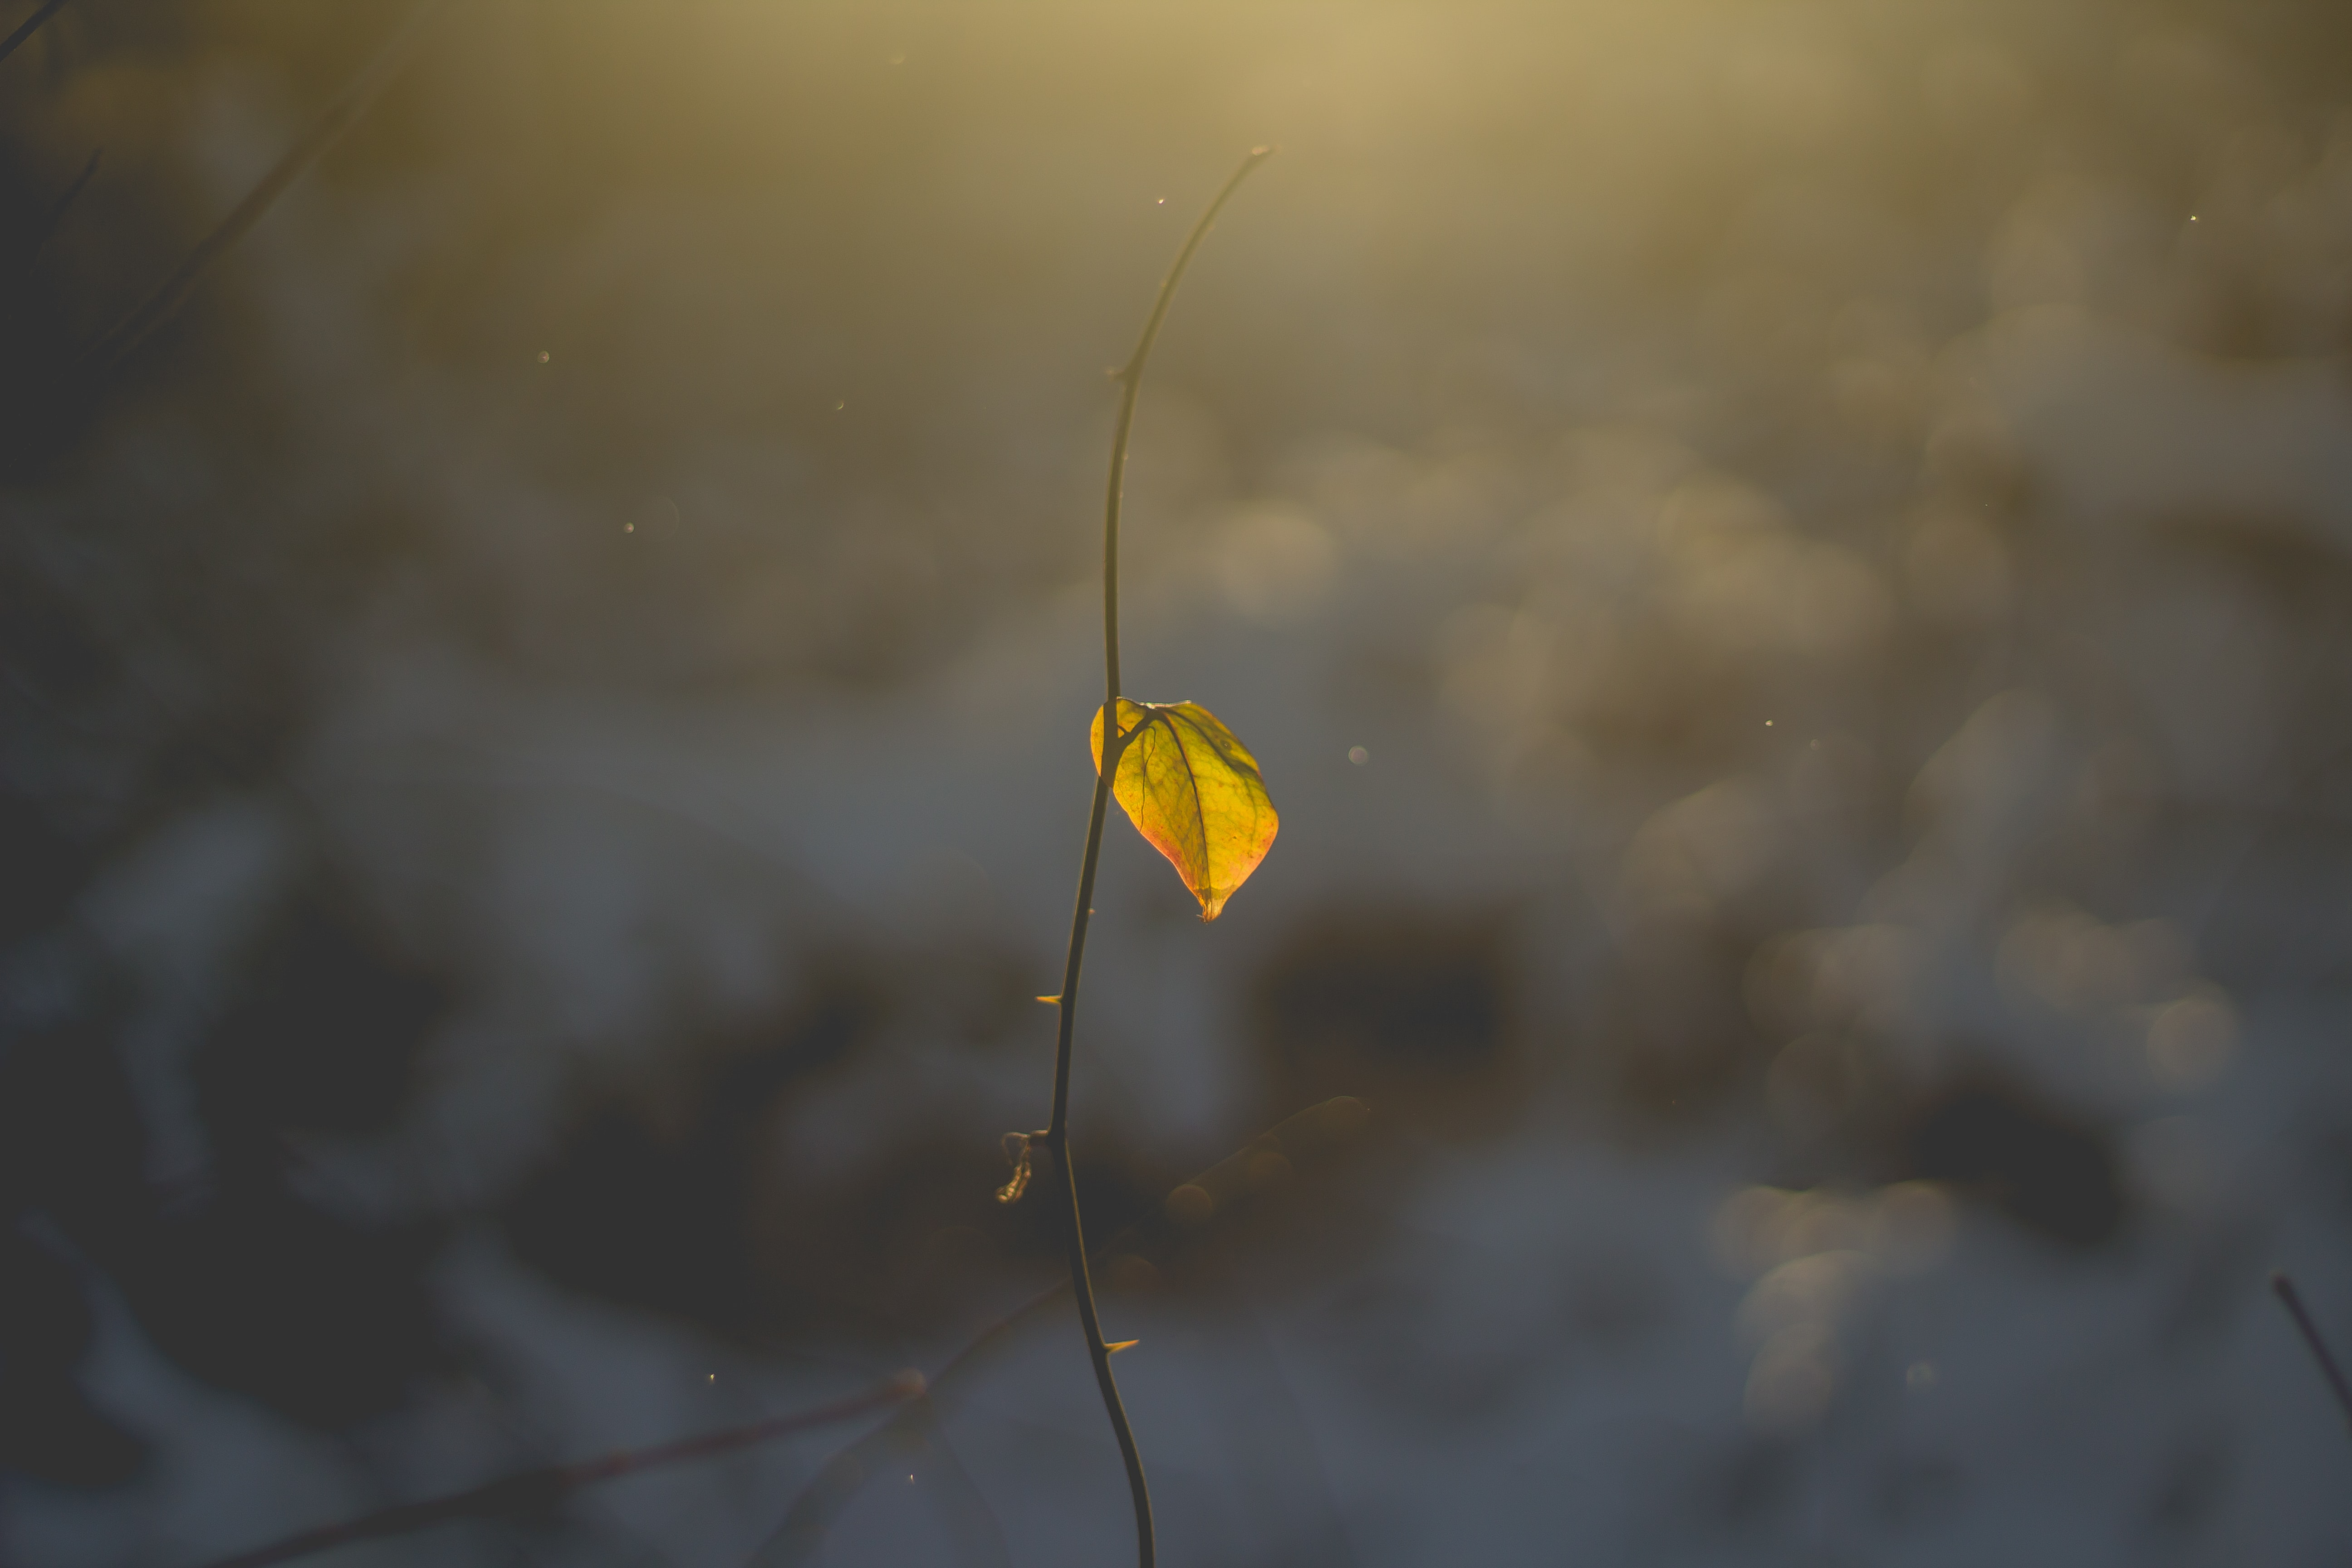 close up photo of withered plant with yellow leaf